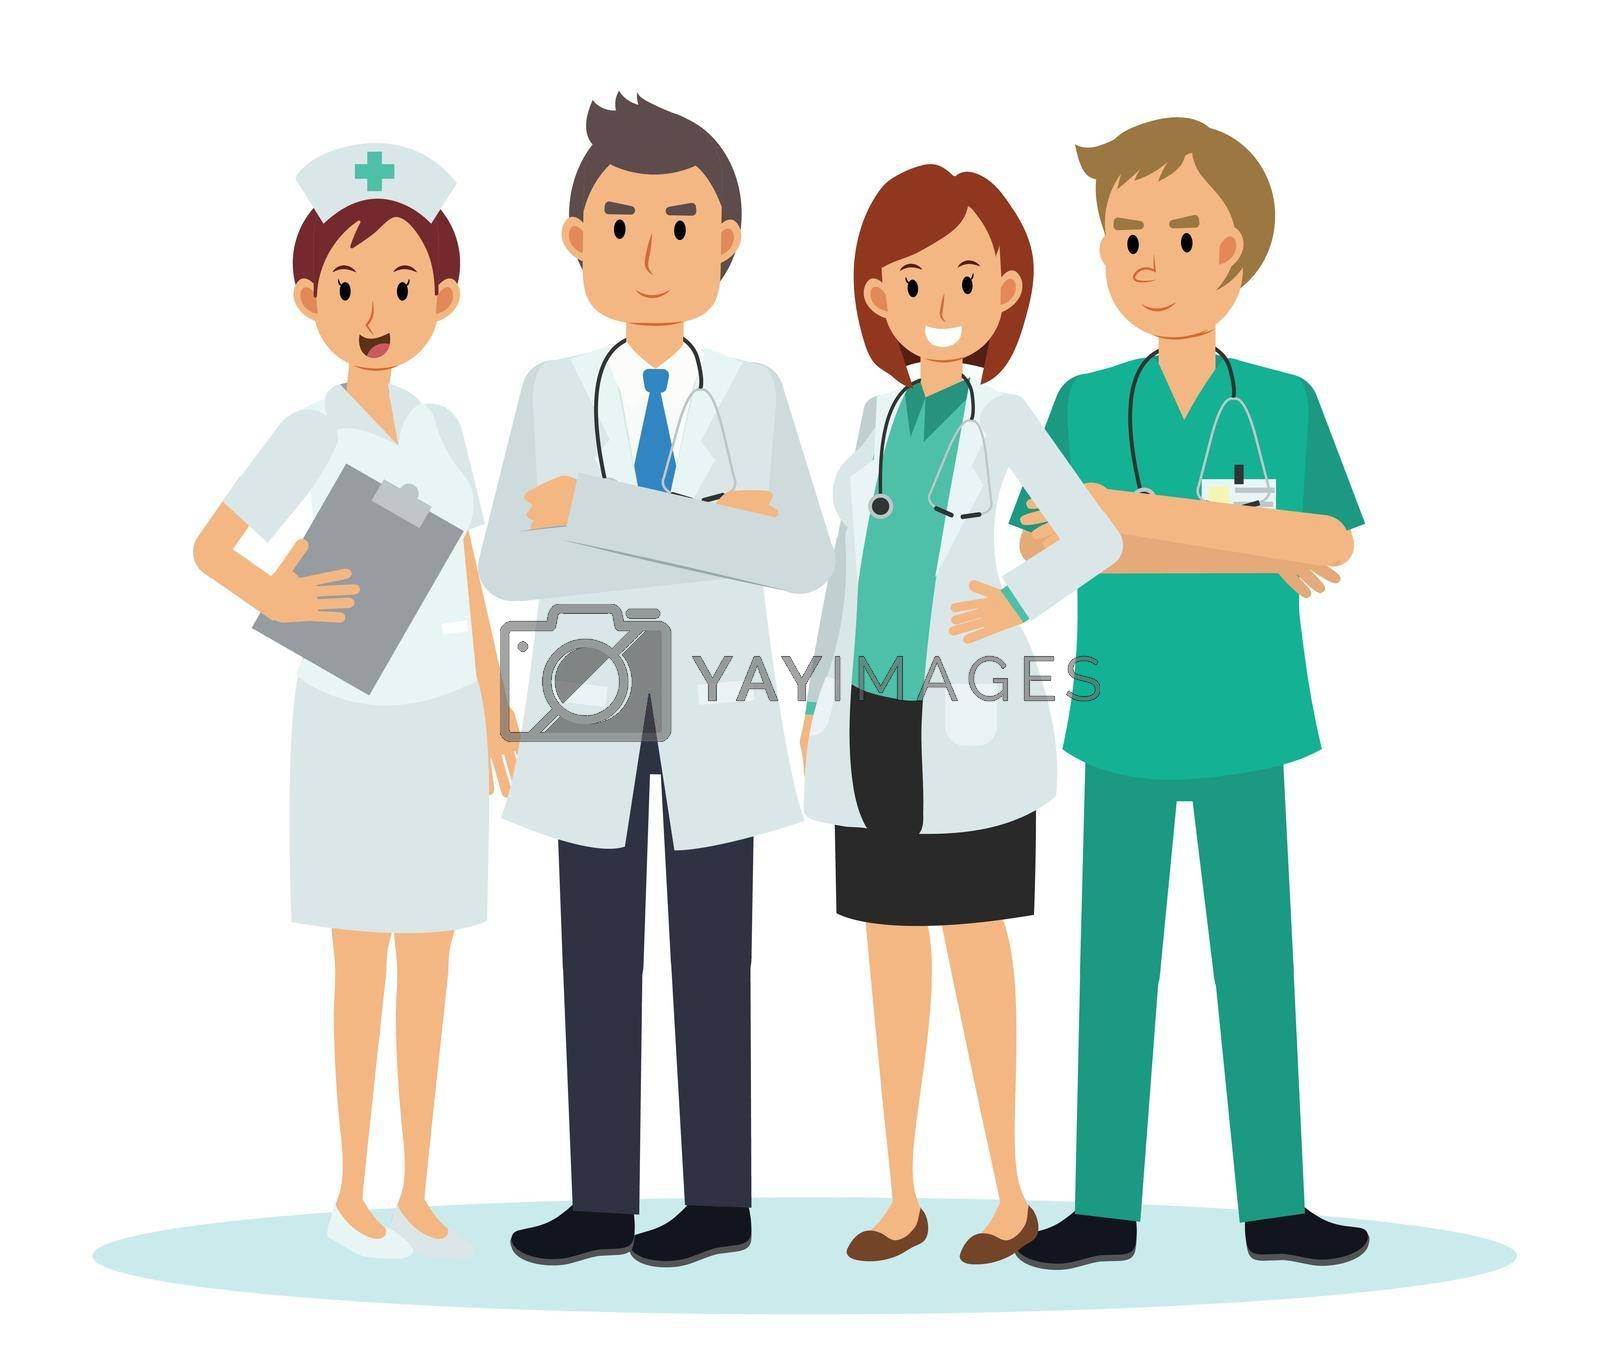 Vector illustration cartoon character of Medical Team and staff ,Doctor Nurse